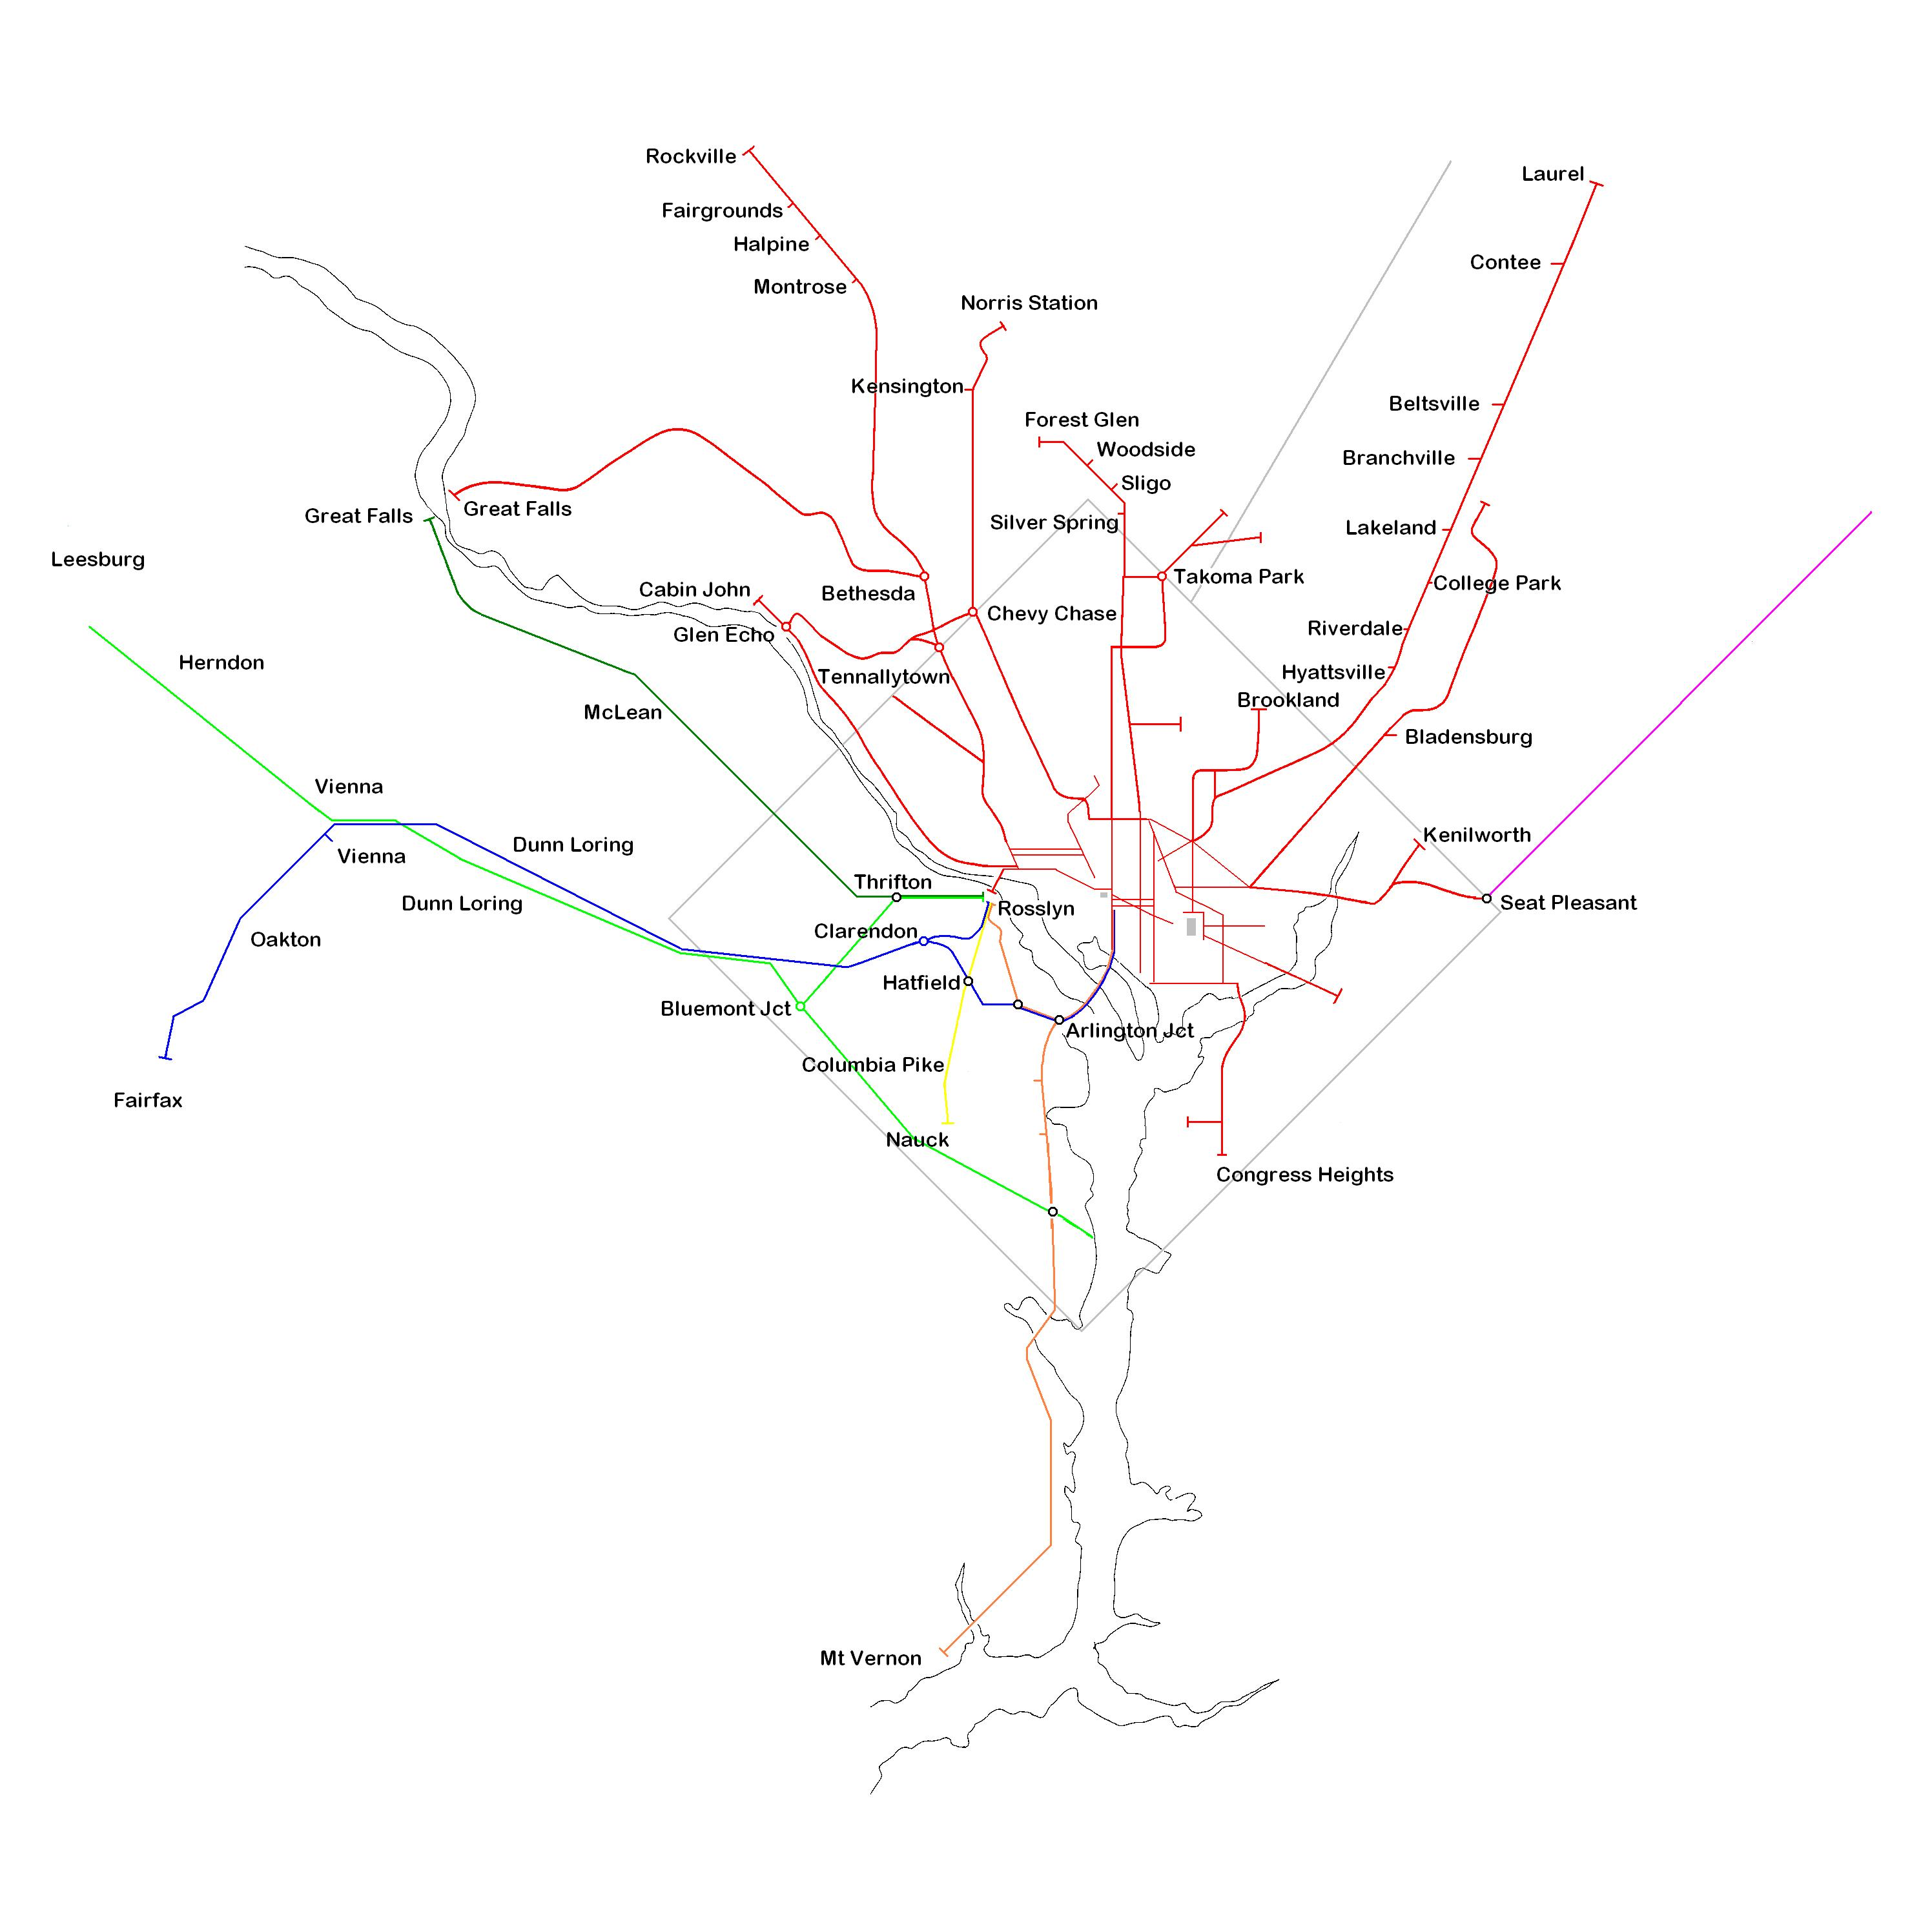 See all of the region's historic trolley routes on one map – Greater Dc Streetcar Map on